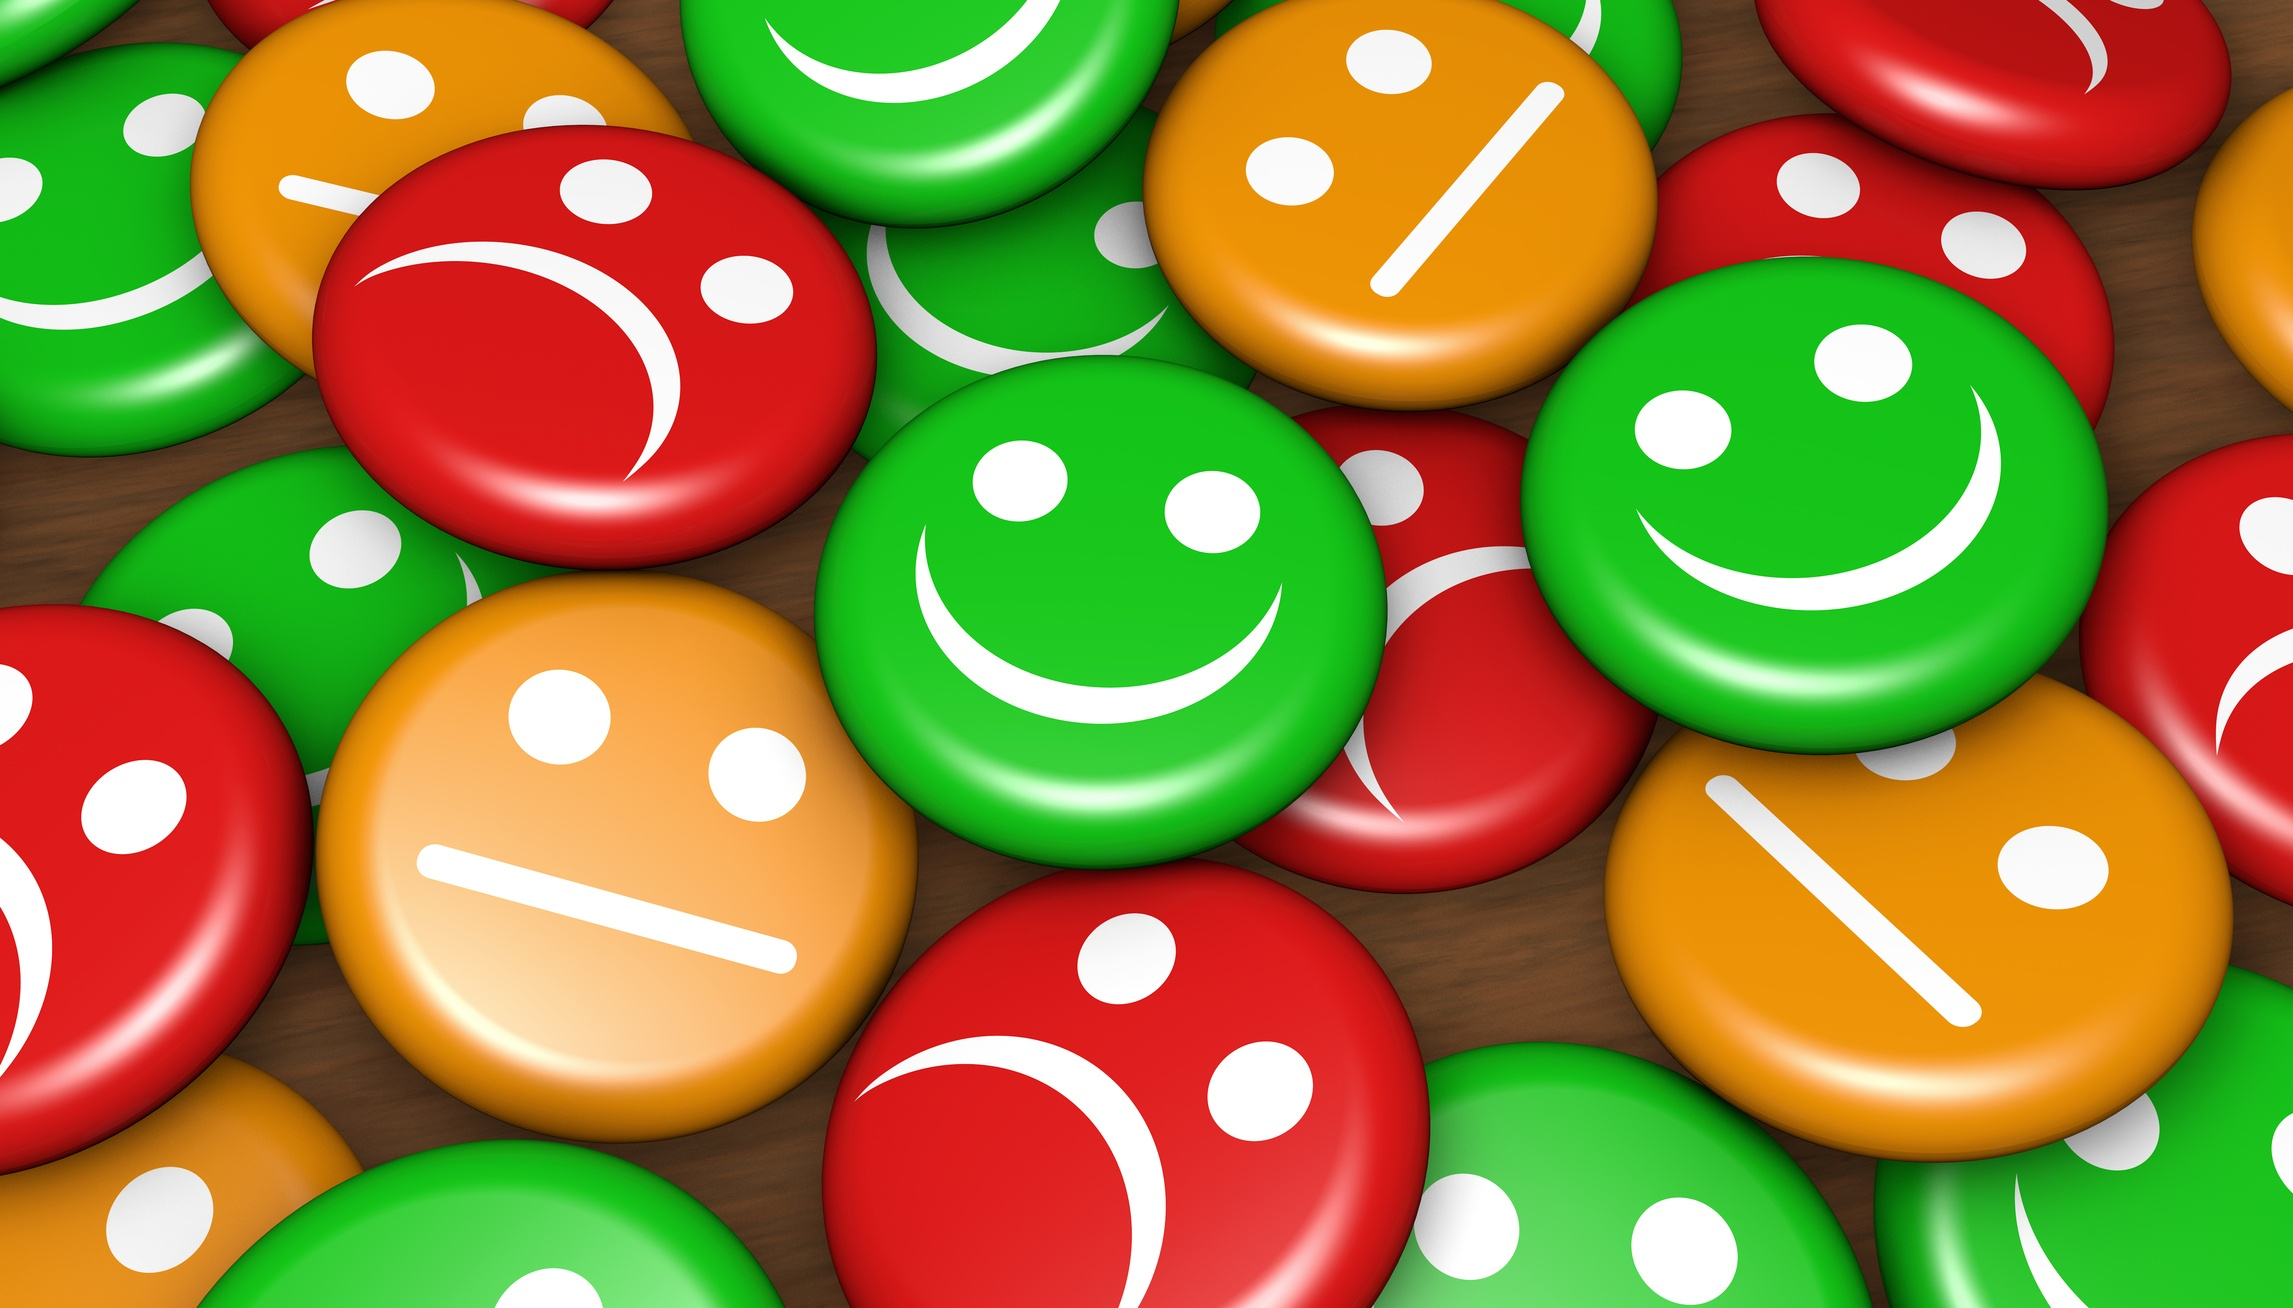 Feedback Surveys Can Give You Great Insight into Customer Happiness